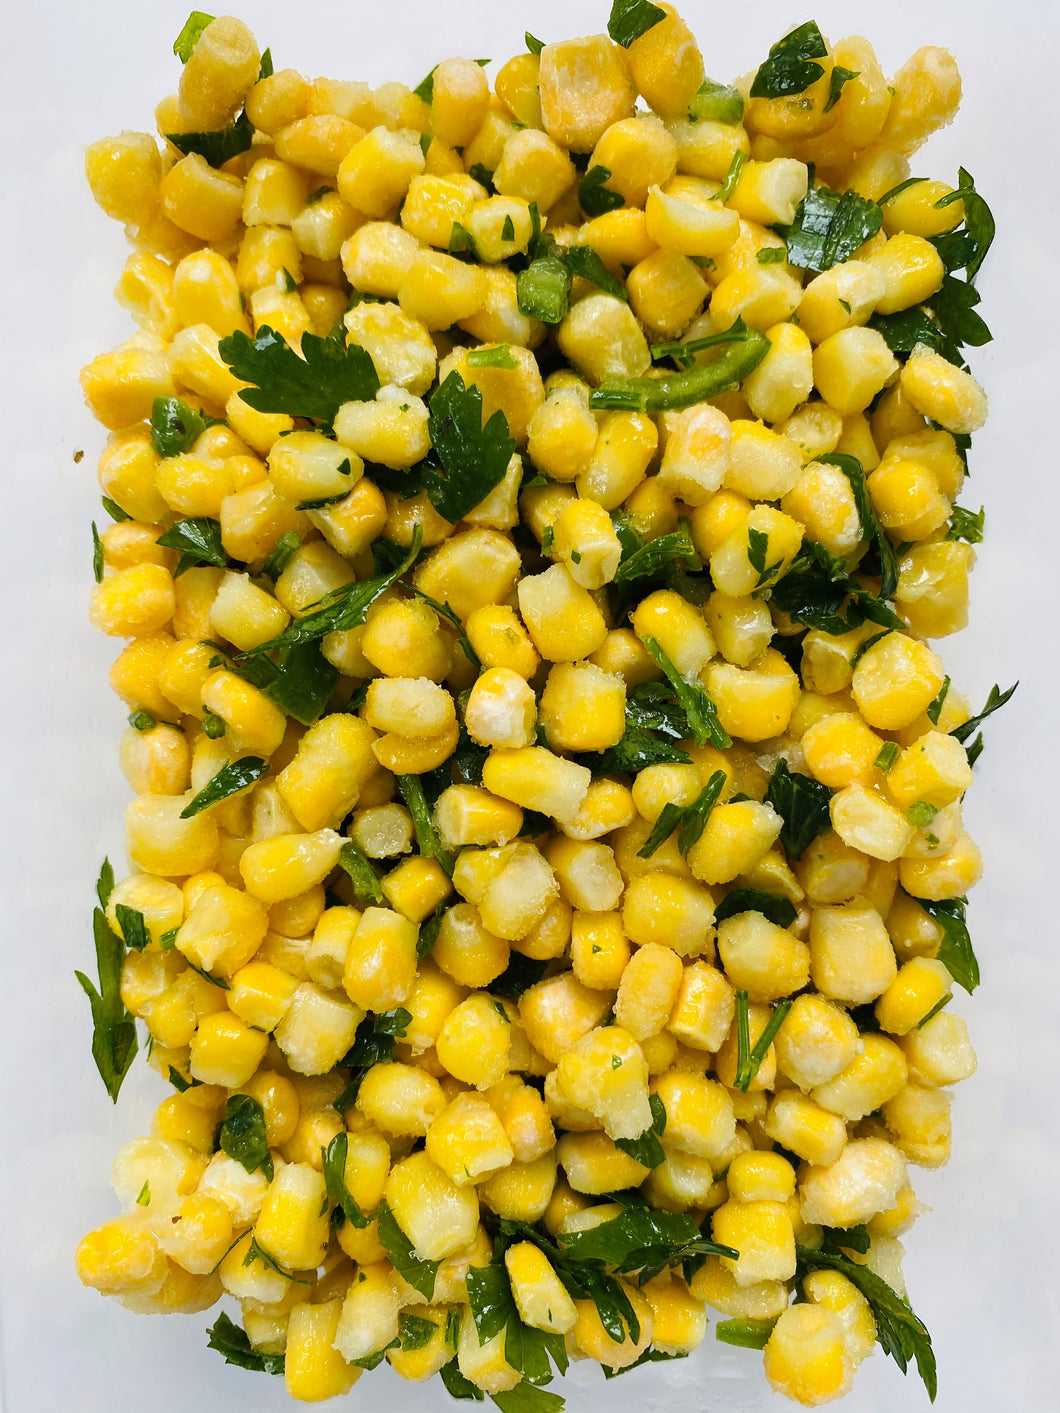 Sweetcorn & parsley salad - 480g